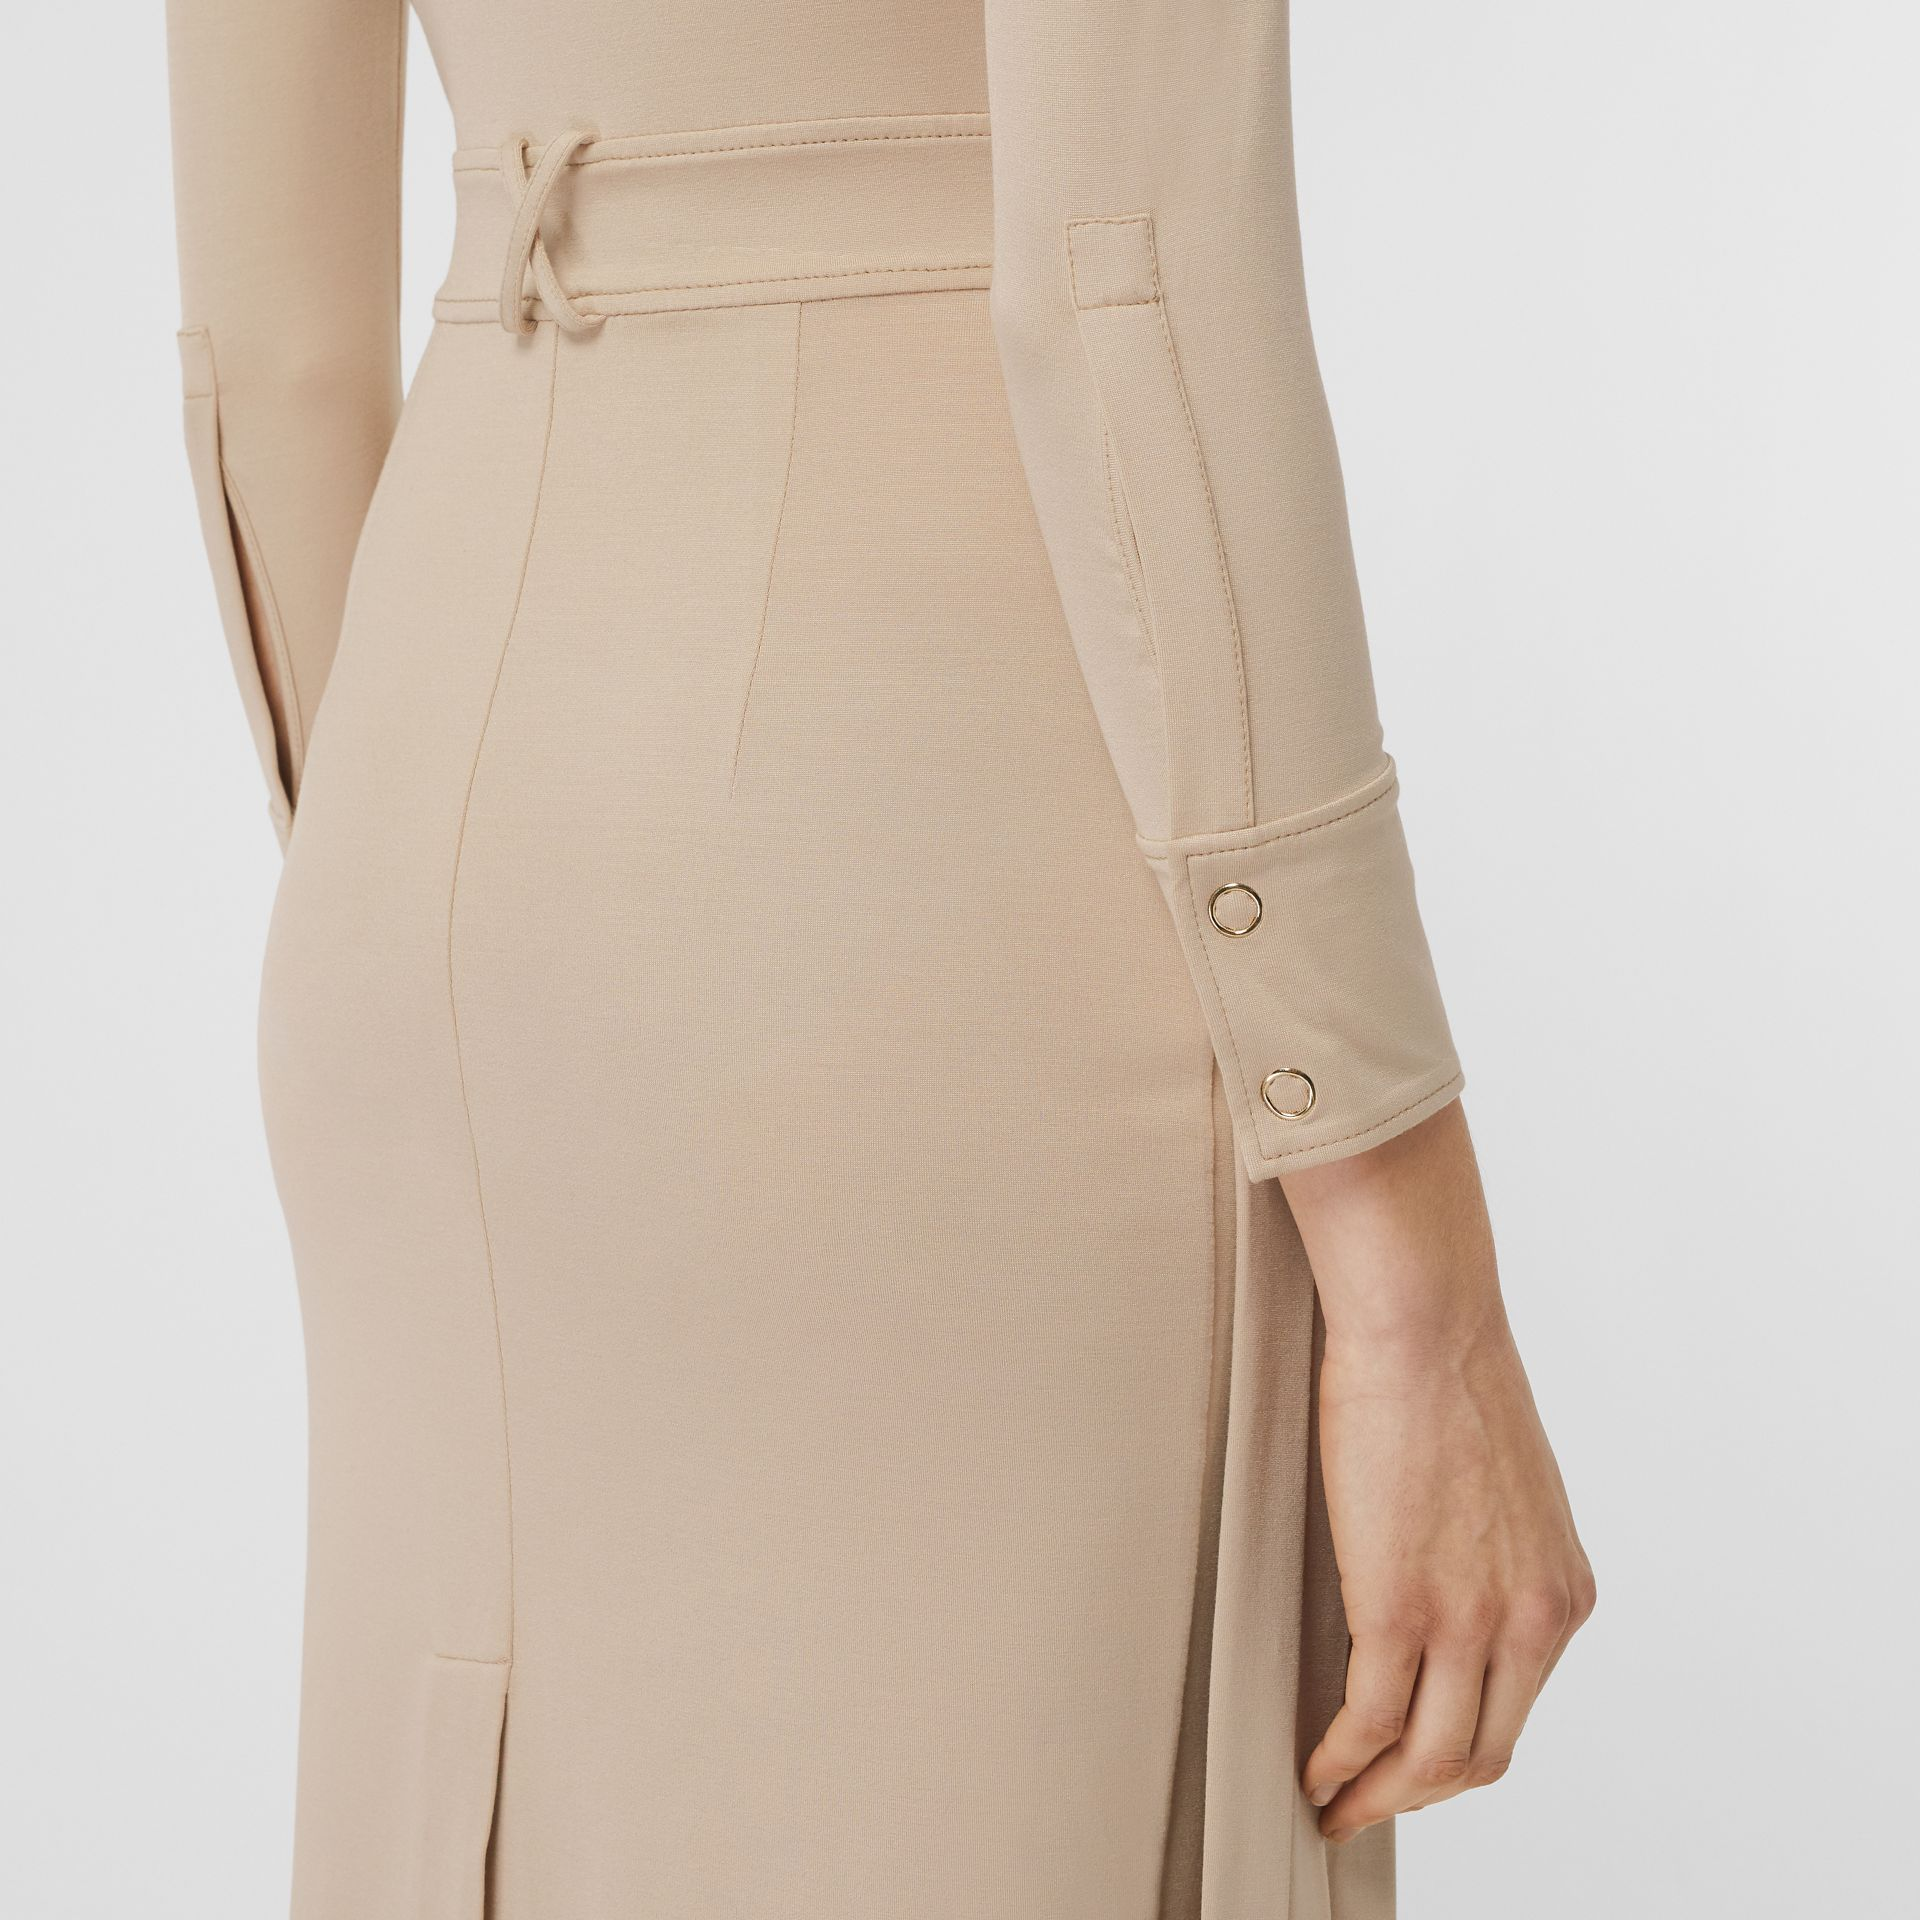 Long-sleeve Pleated Dress in Teddy Beige - Women | Burberry United States - gallery image 1